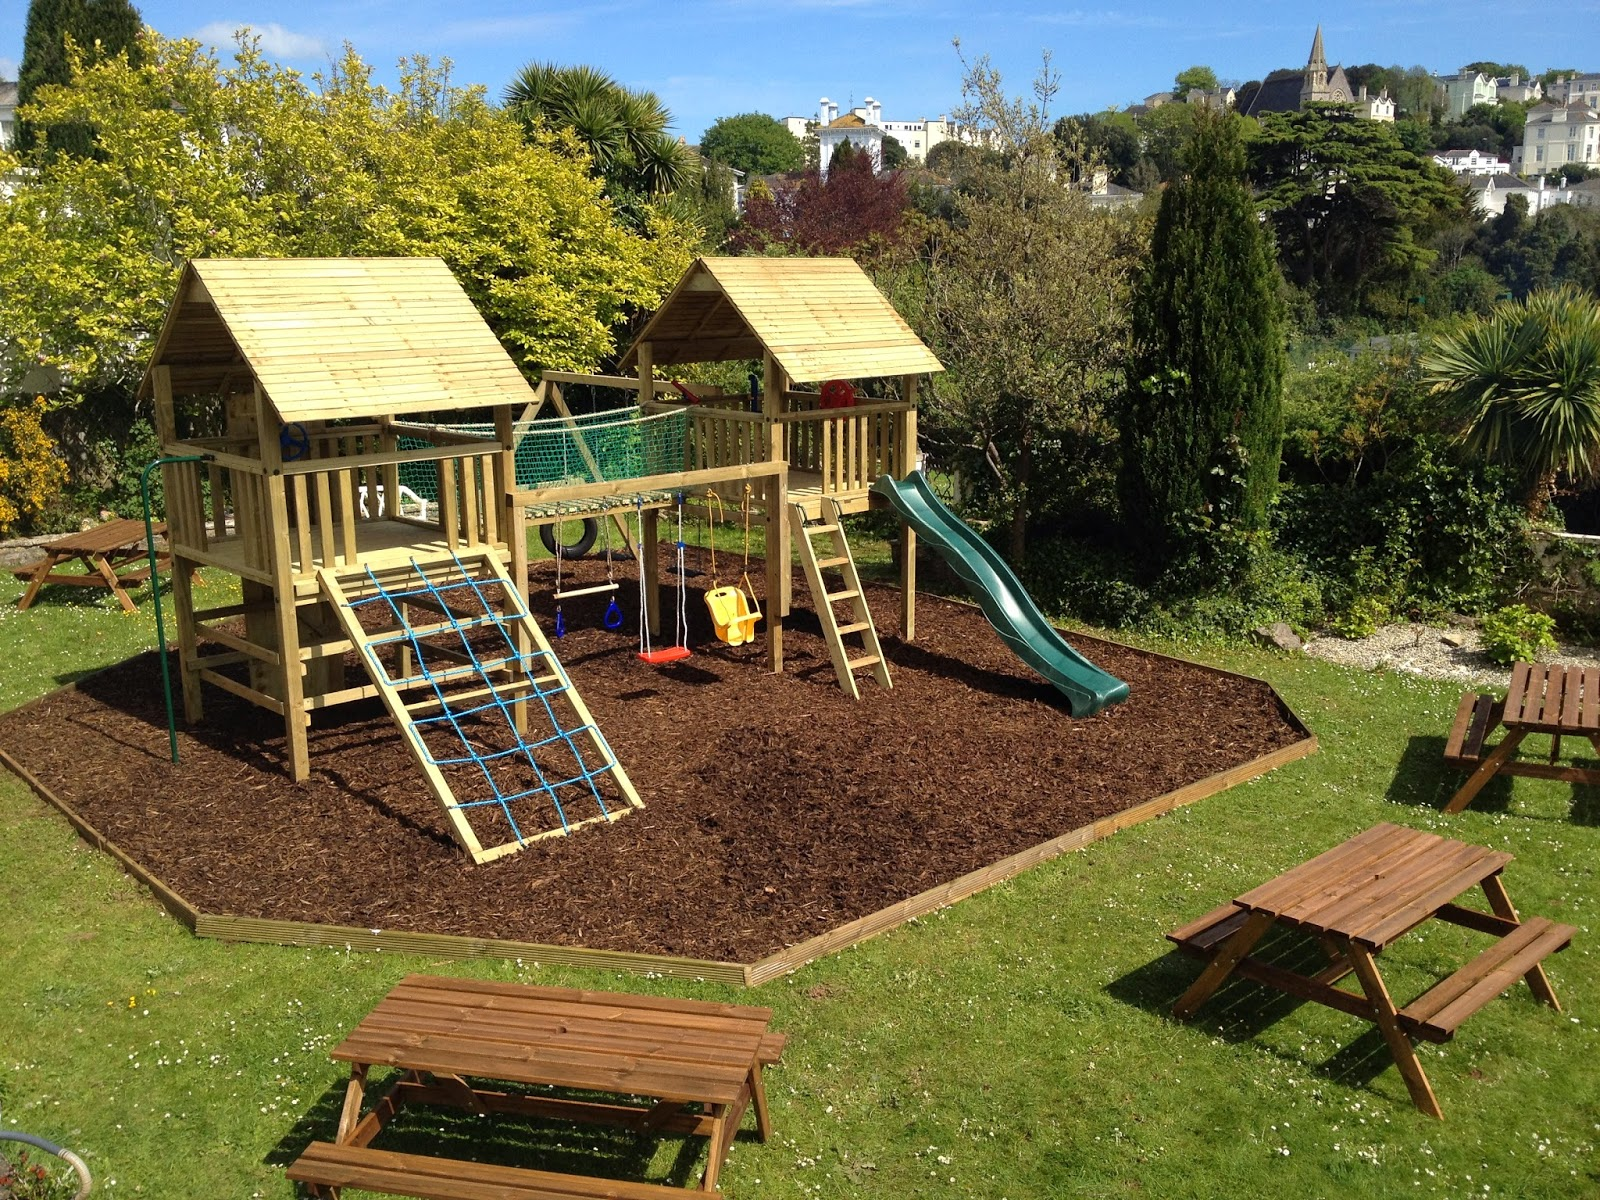 Fresh Garden News: How to Build an Outdoor Play Space for Your Young ...